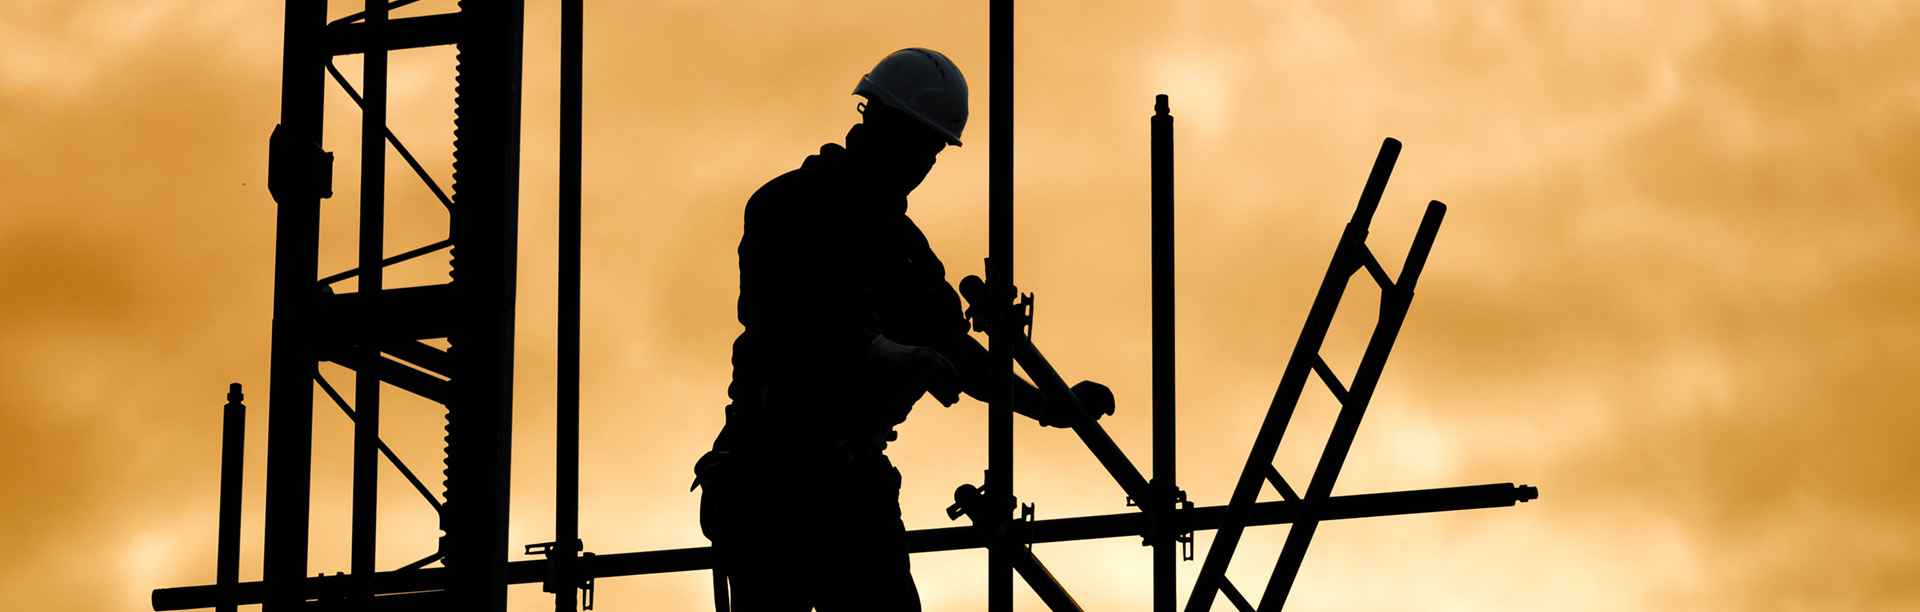 silhouette of construction worker against sky on scaffolding wit